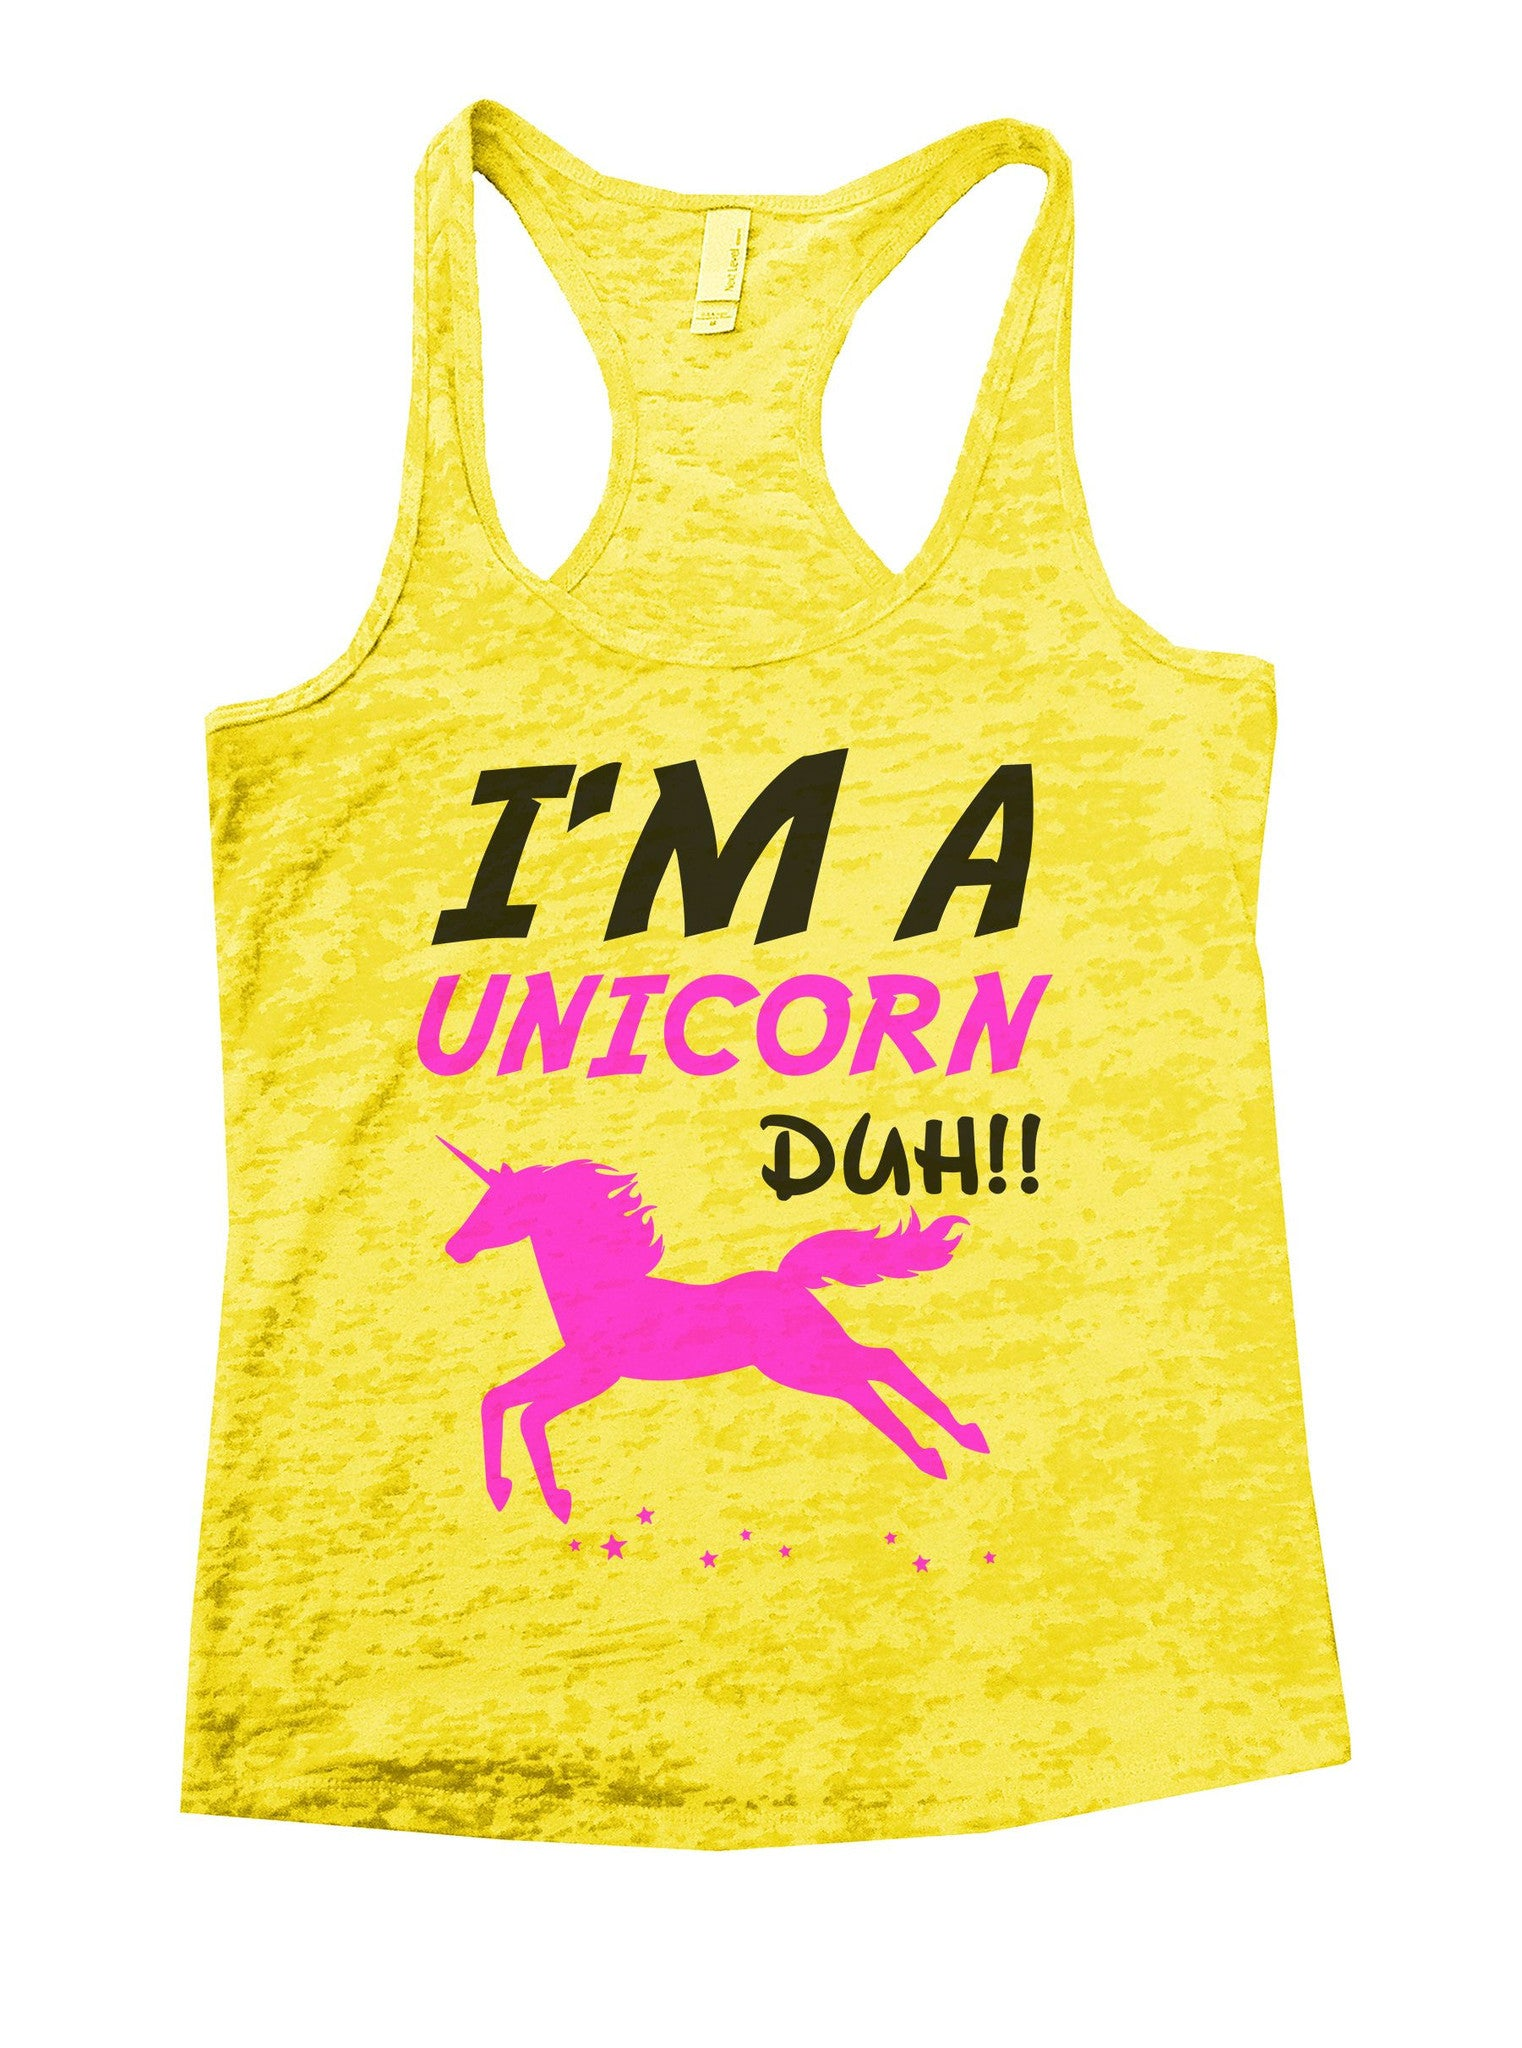 I'm A Unicorn Duh Burnout Tank Top By BurnoutTankTops.com - 795 - Funny Shirts Tank Tops Burnouts and Triblends  - 7